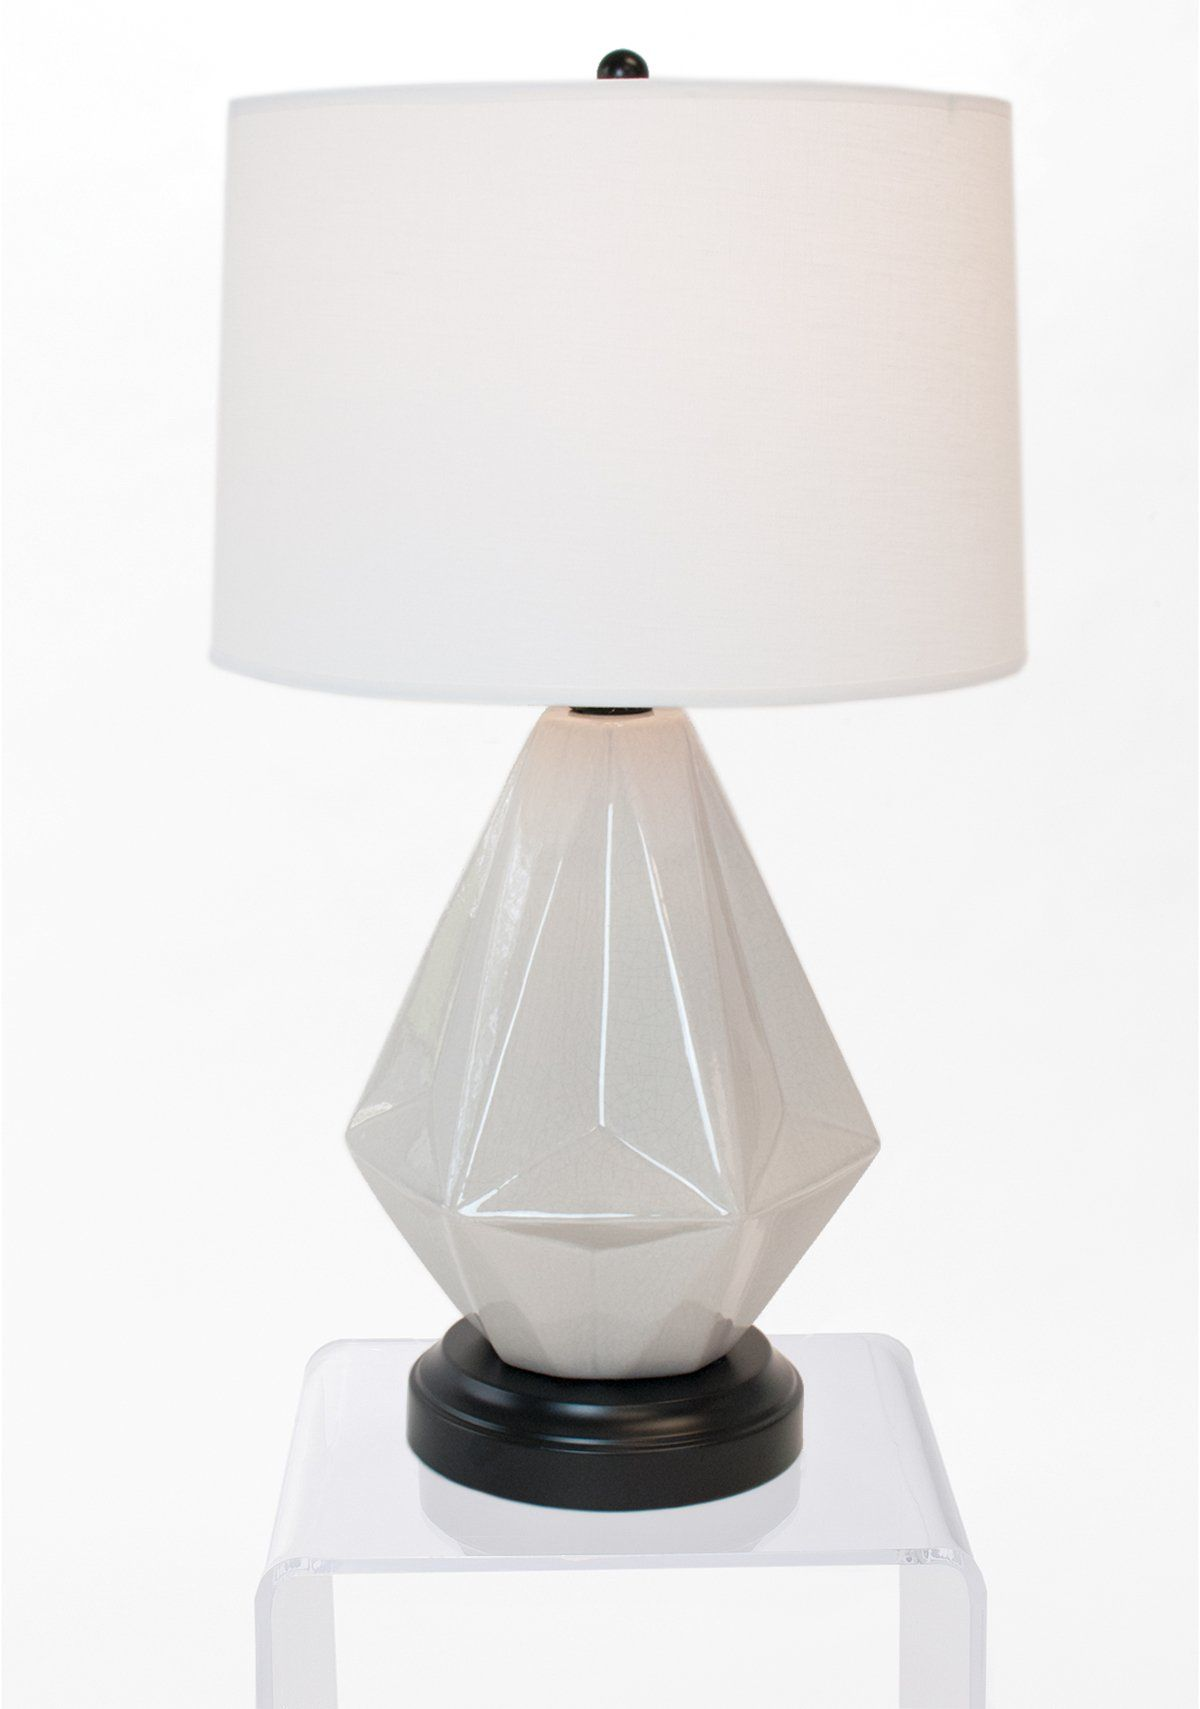 Prisma Gray Cordless Lamp Made In The Usa Cordless Lamps